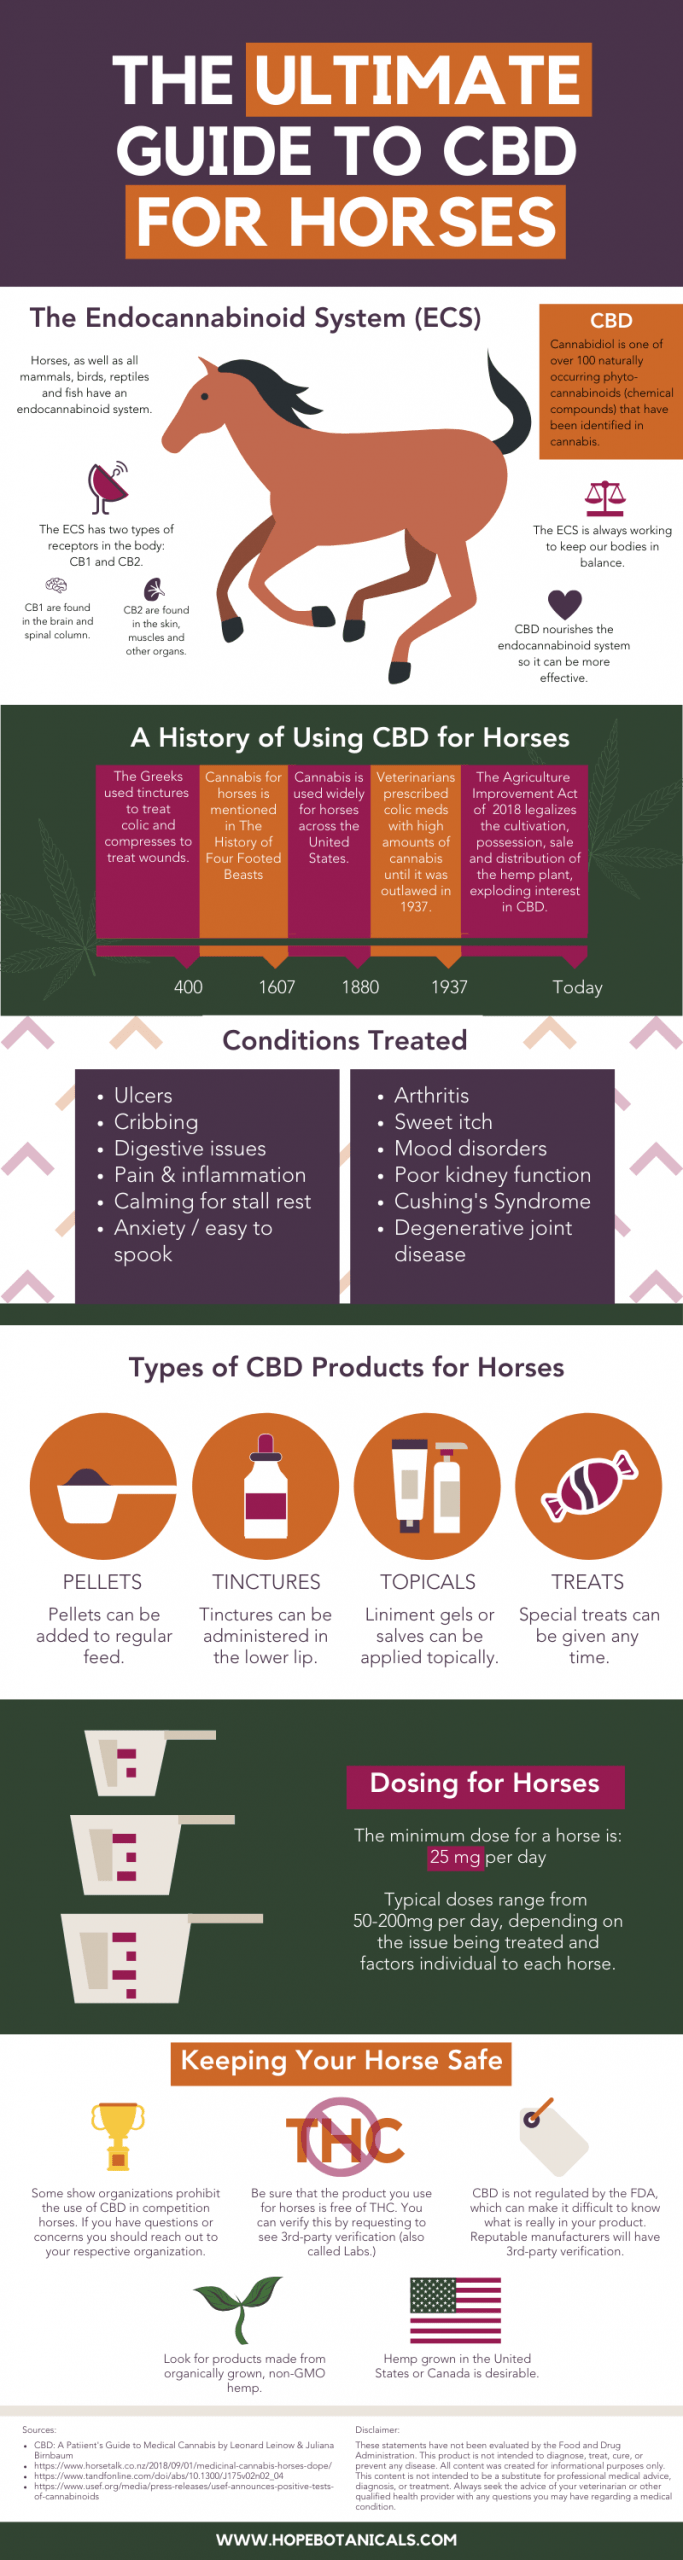 The Ultimate Guide to Using CBD for Horses